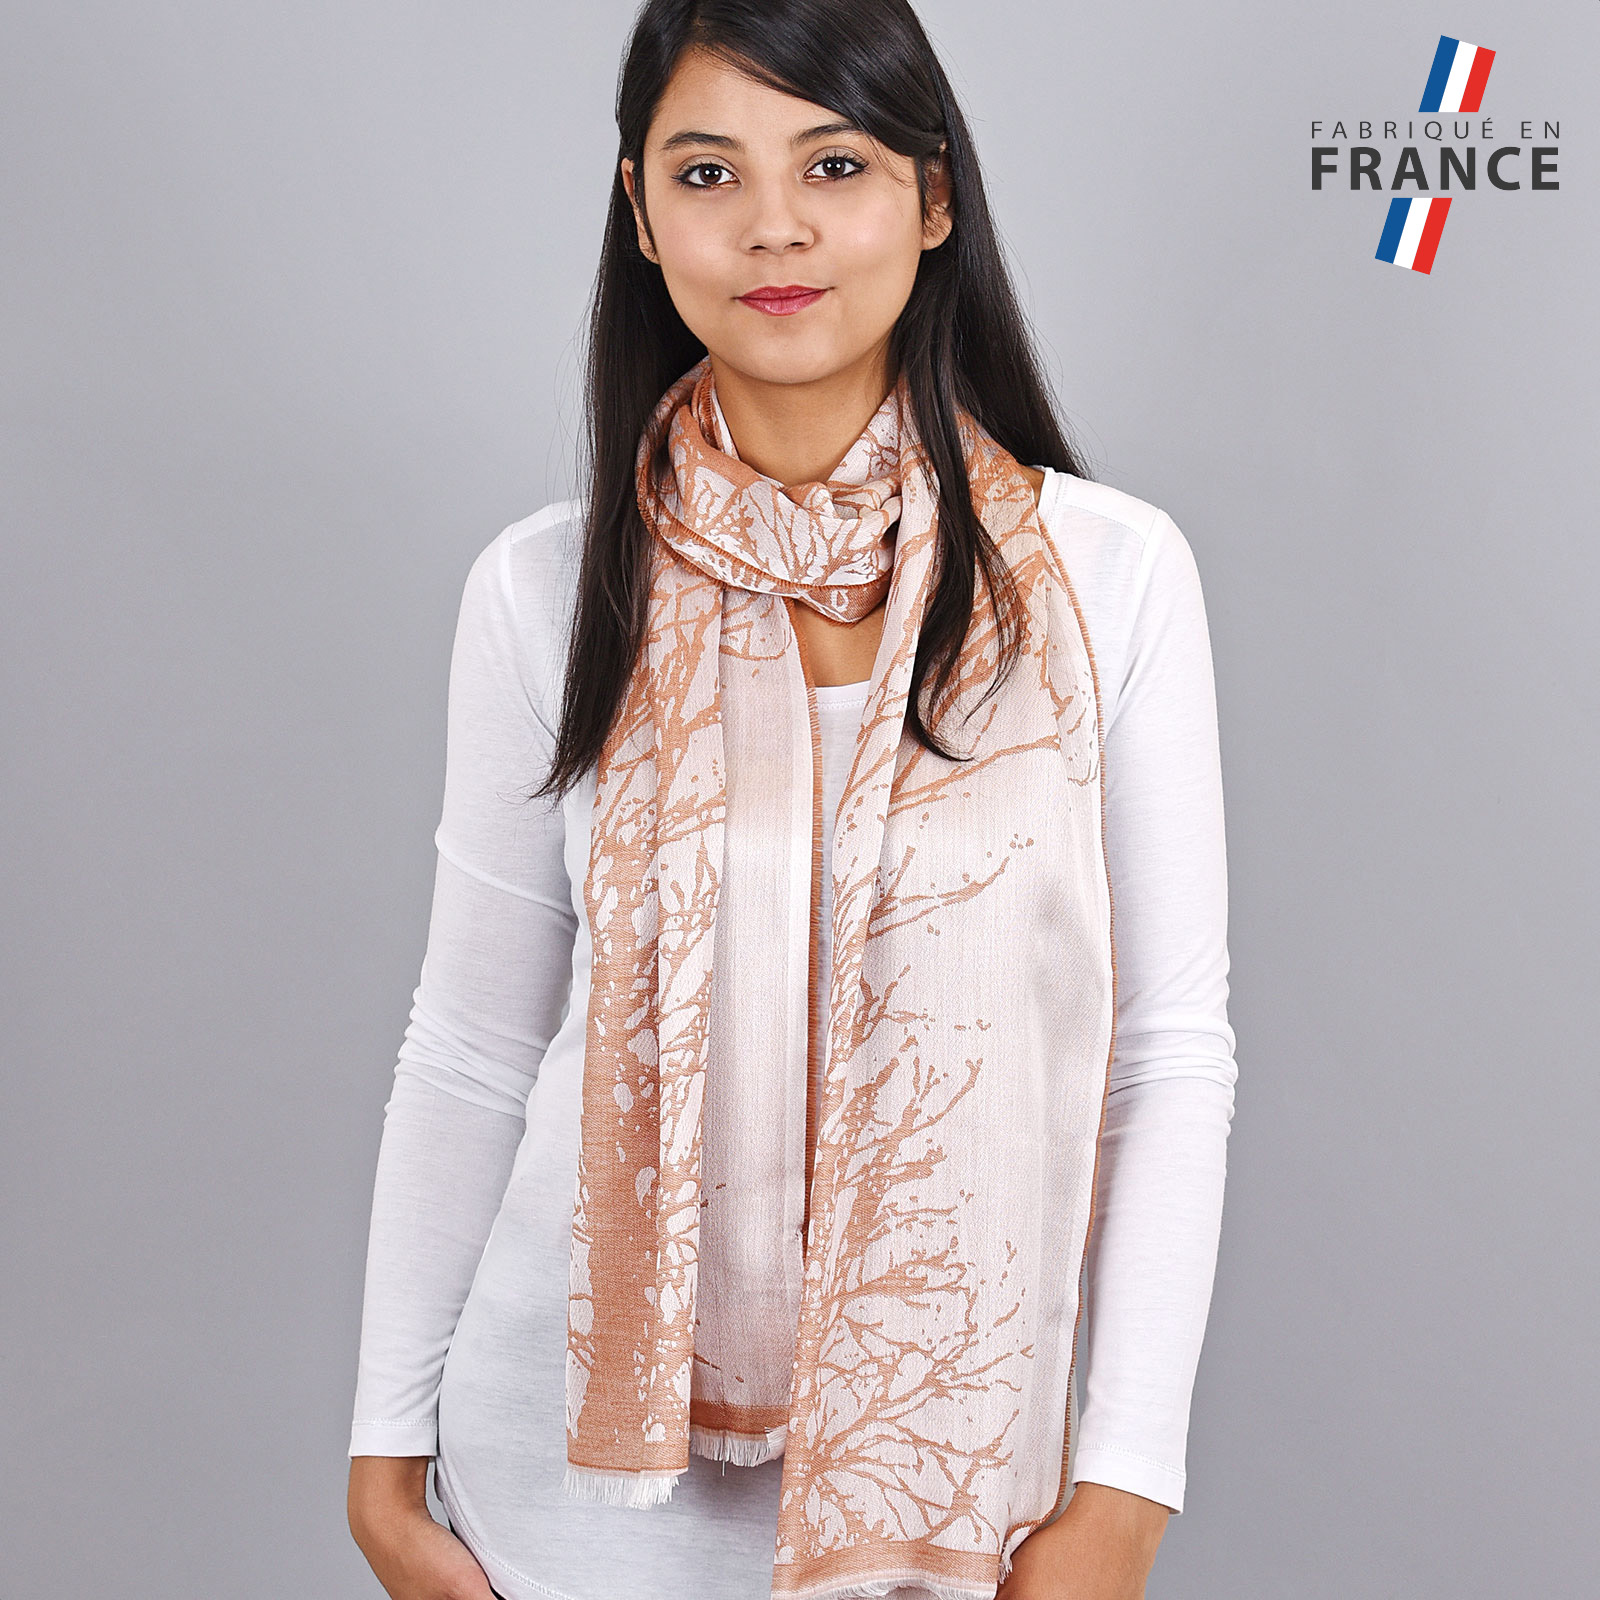 AT-04182-VF16-LB_FR-echarpe-femme-orange-saumon-qualicoq-fabrication-france